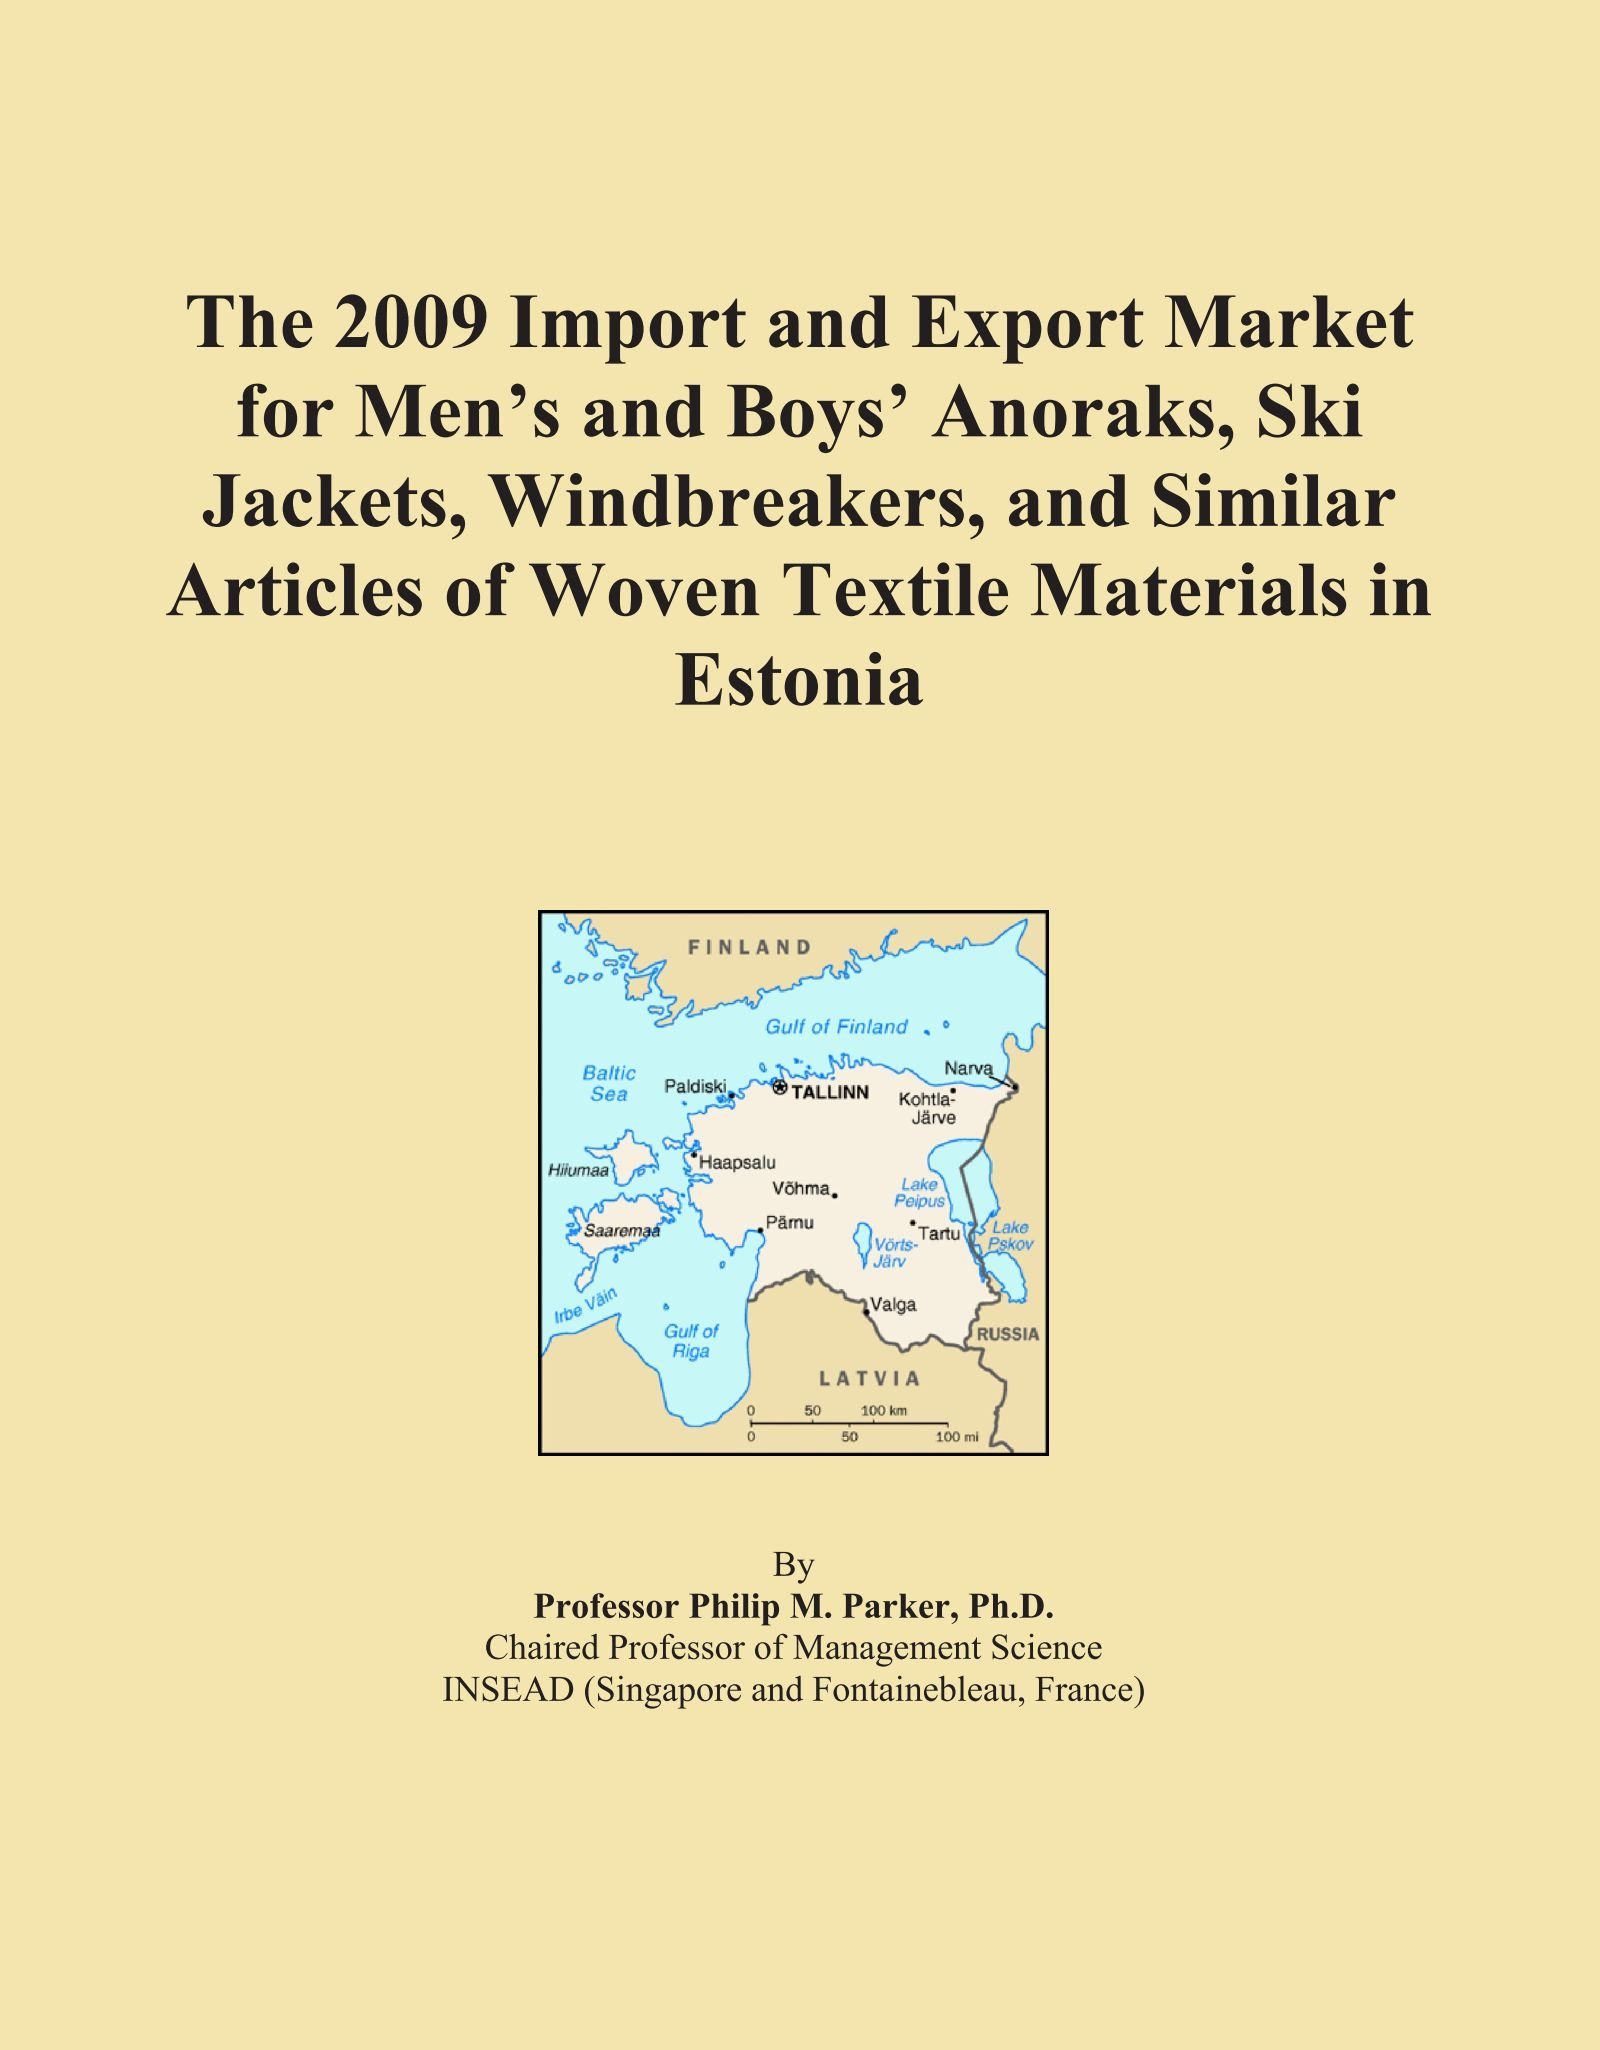 Download The 2009 Import and Export Market for Men's and Boys' Anoraks, Ski Jackets, Windbreakers, and Similar Articles of Woven Textile Materials in Estonia PDF